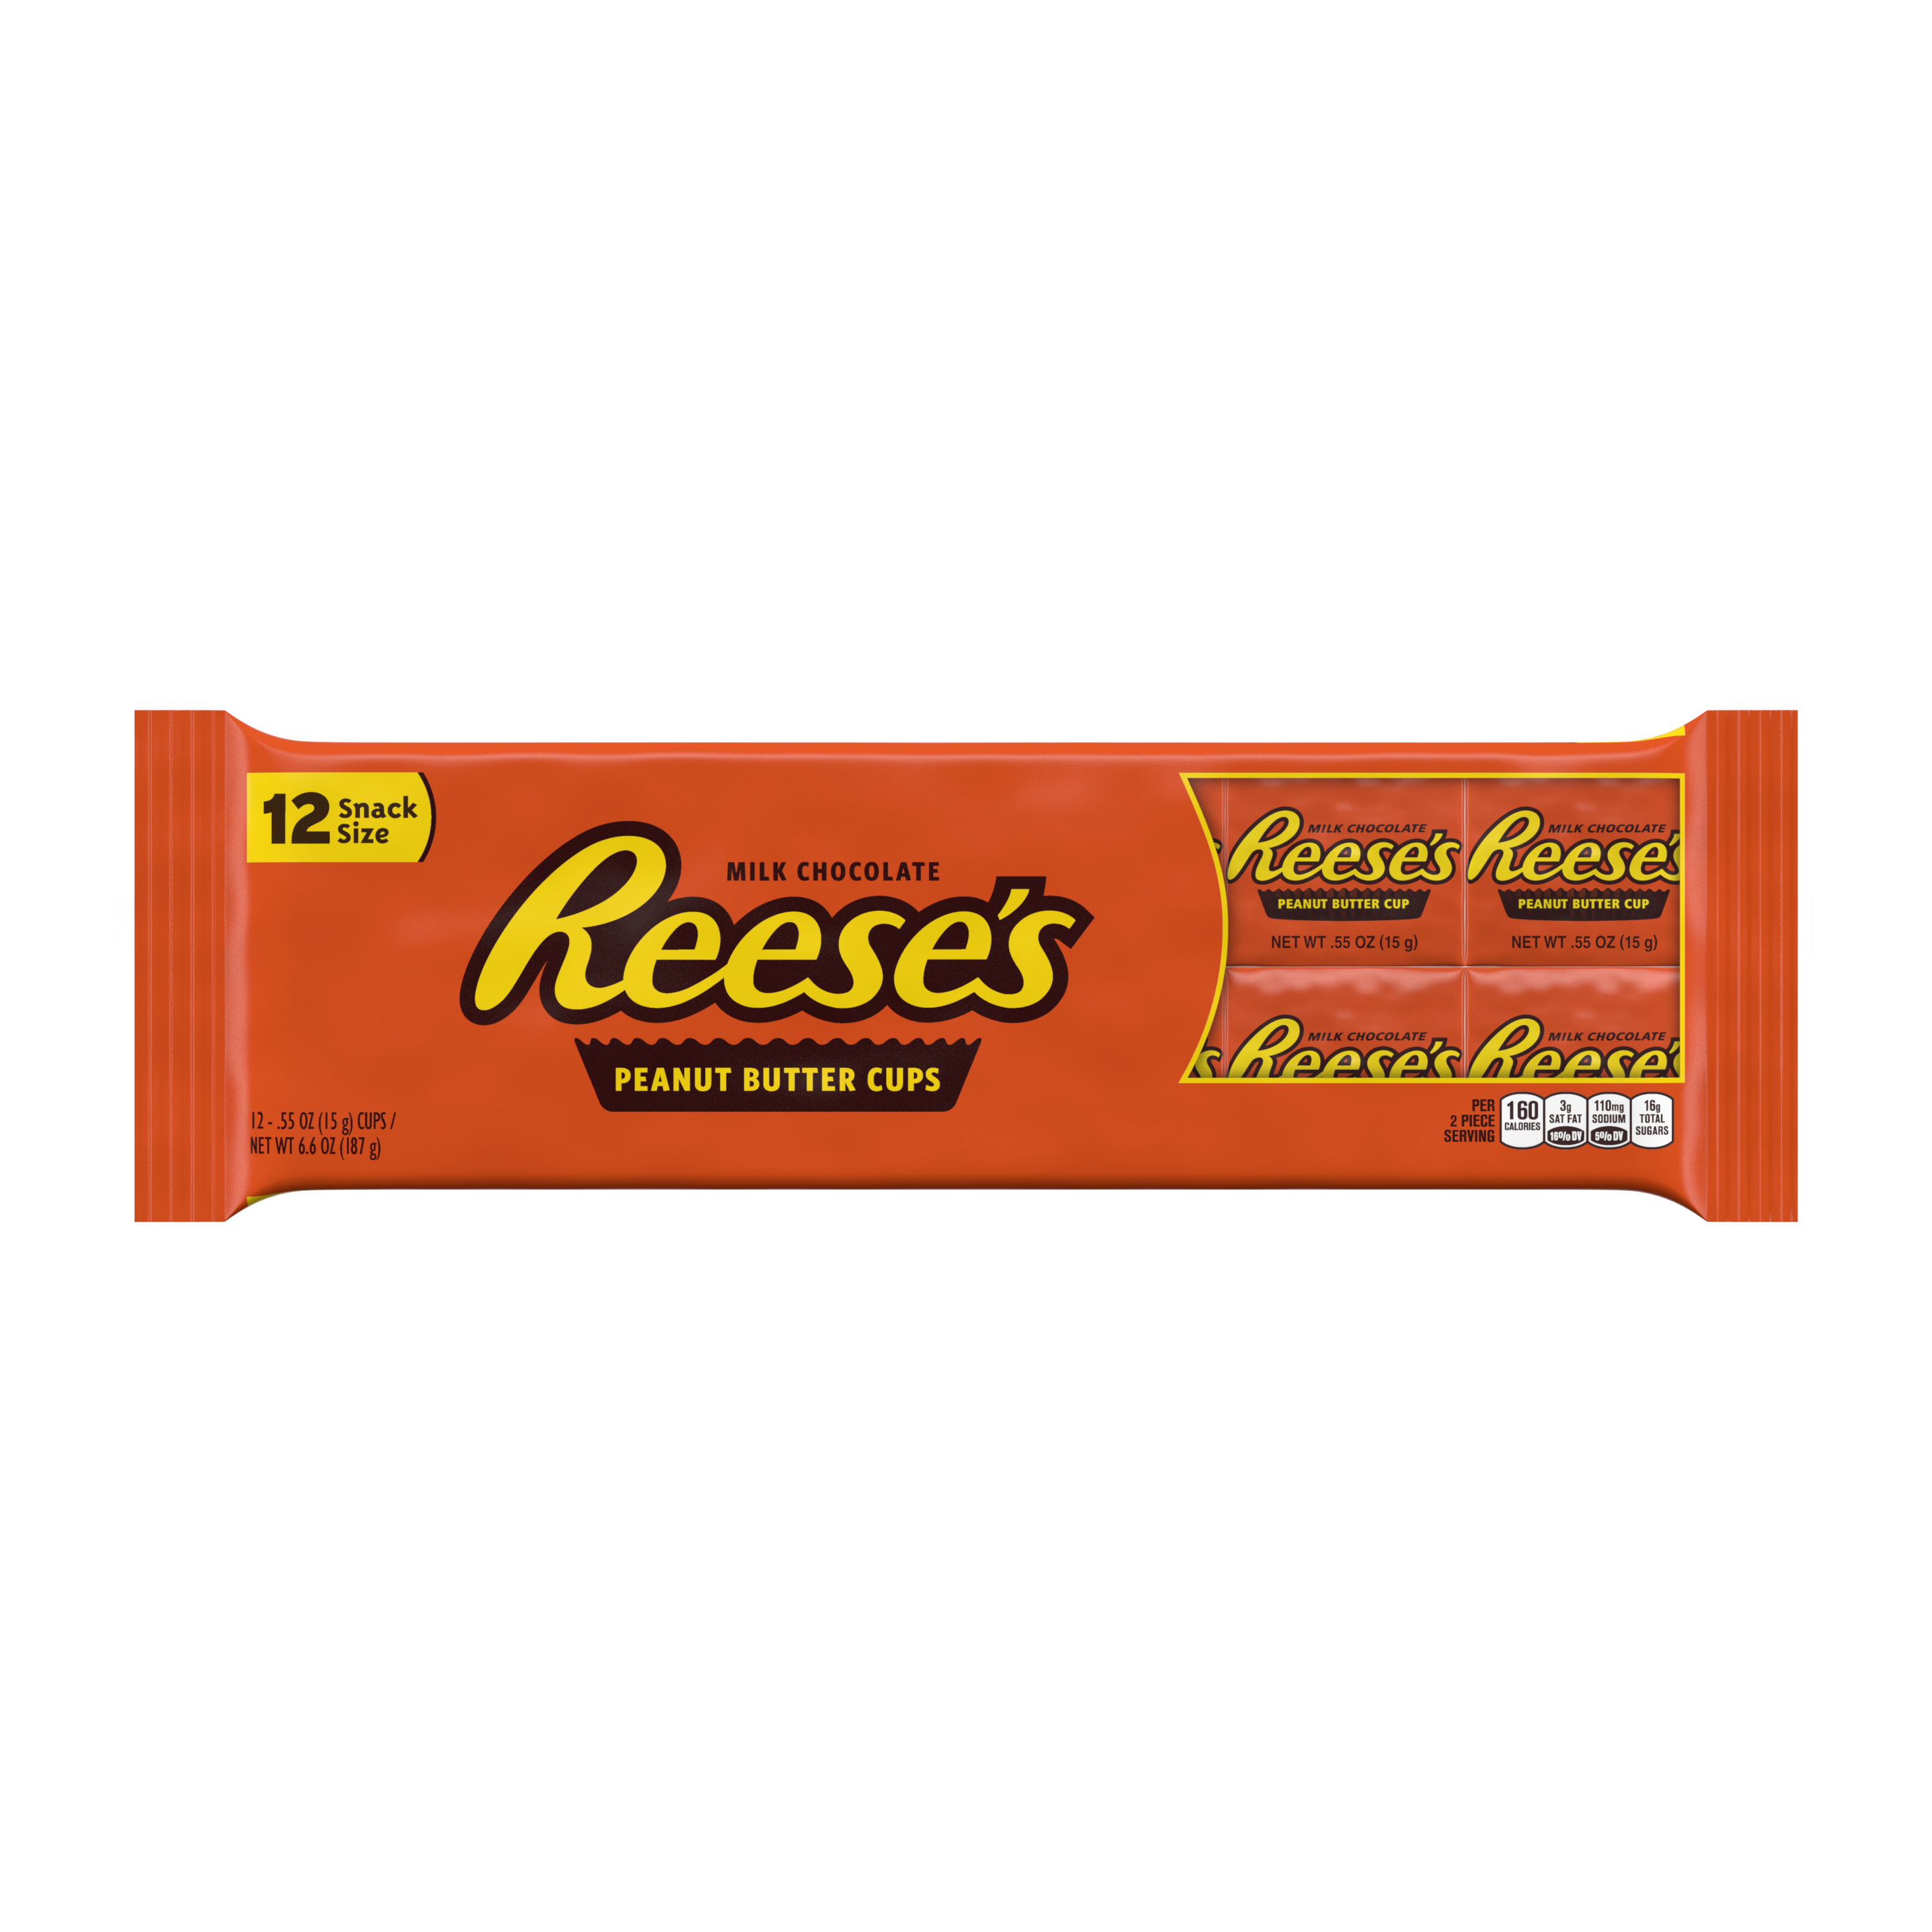 Reese's, Peanut Butter Cups Chocolate Candy, 6.6 Oz, 12 Ct